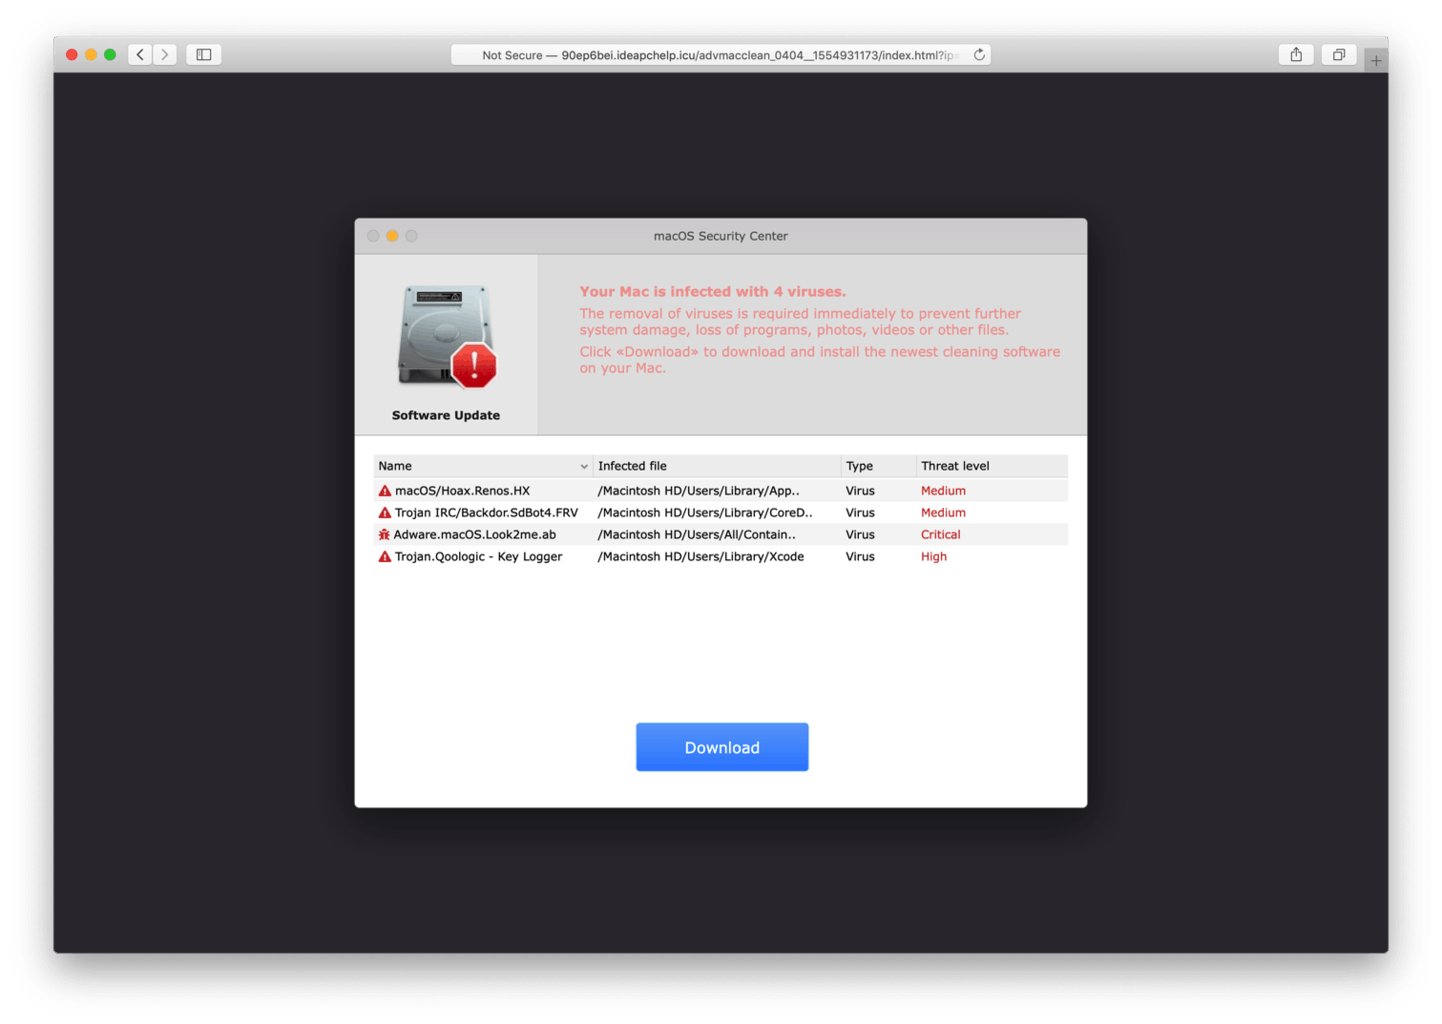 This page contains instructions on how to remove Your Mac